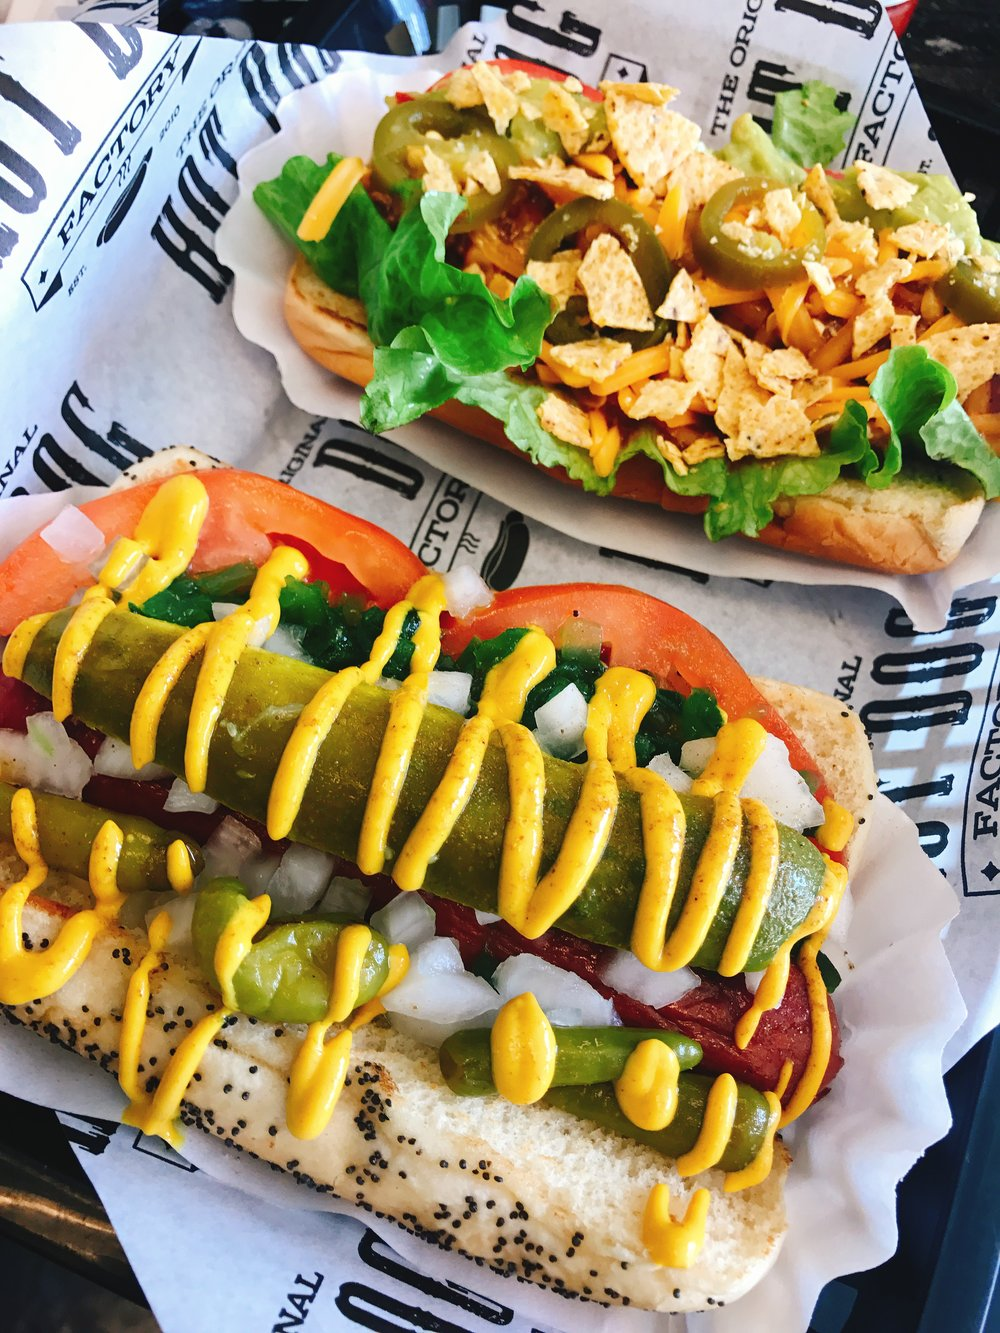 The Chicago Dog and the Taco Dog